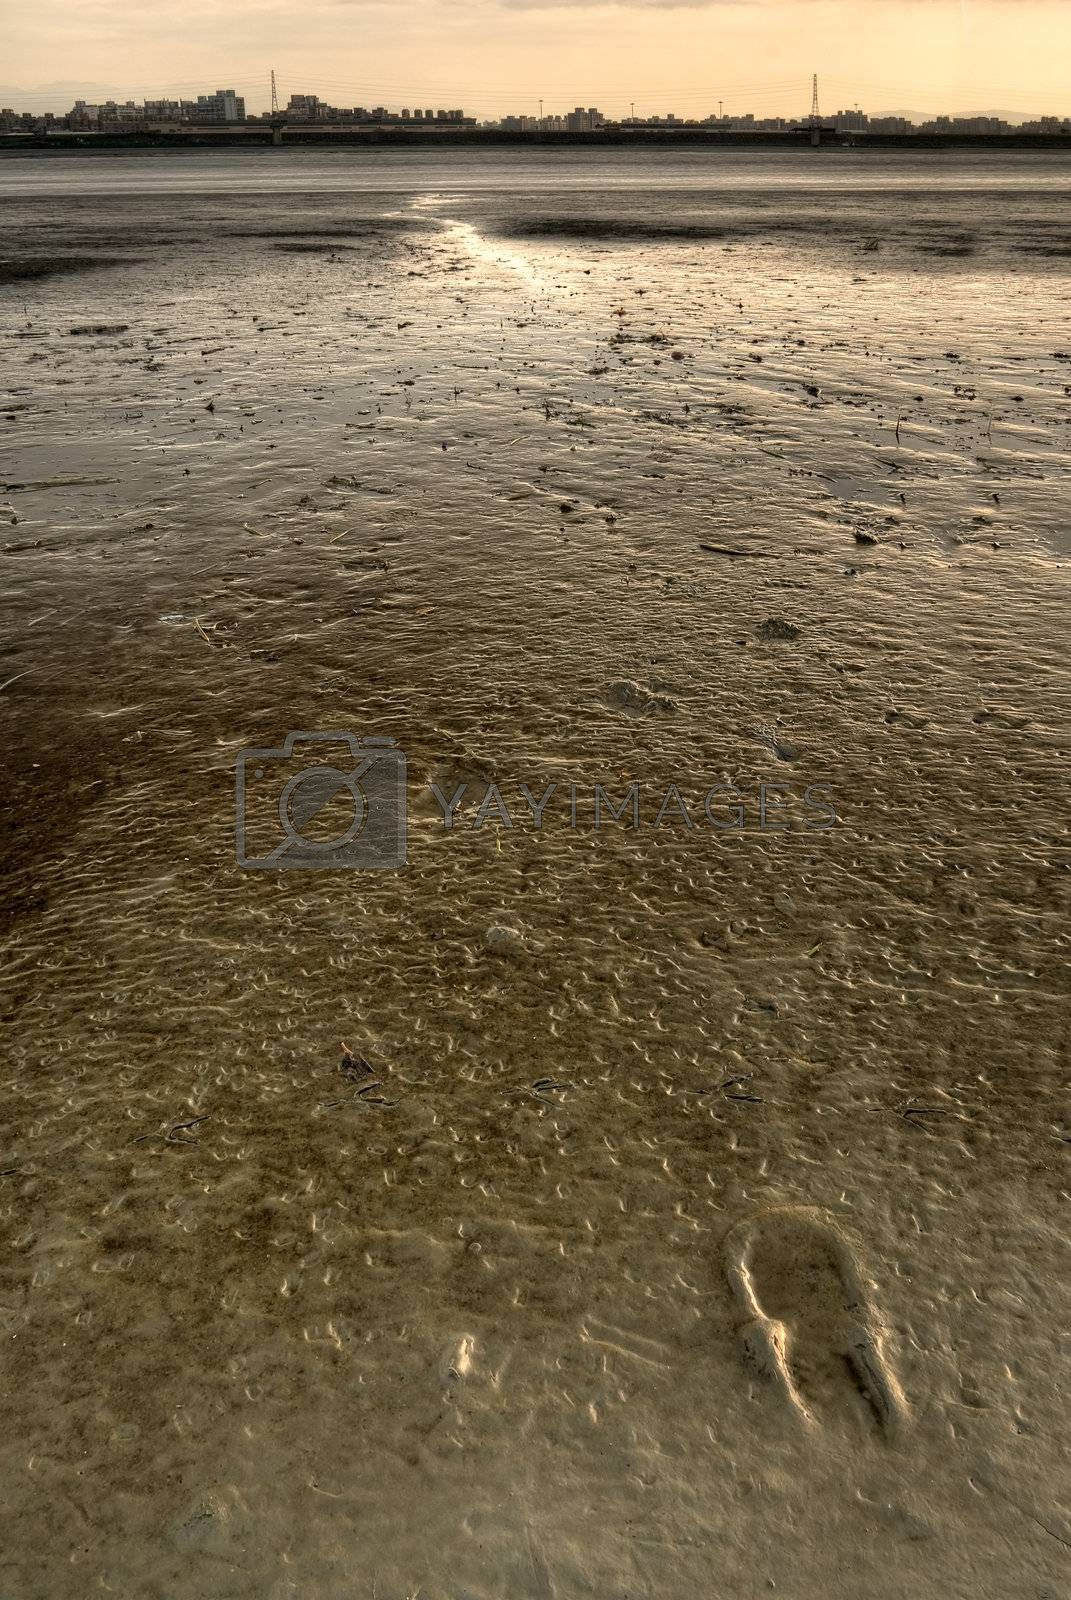 Single footprint on mud of river with nobody.